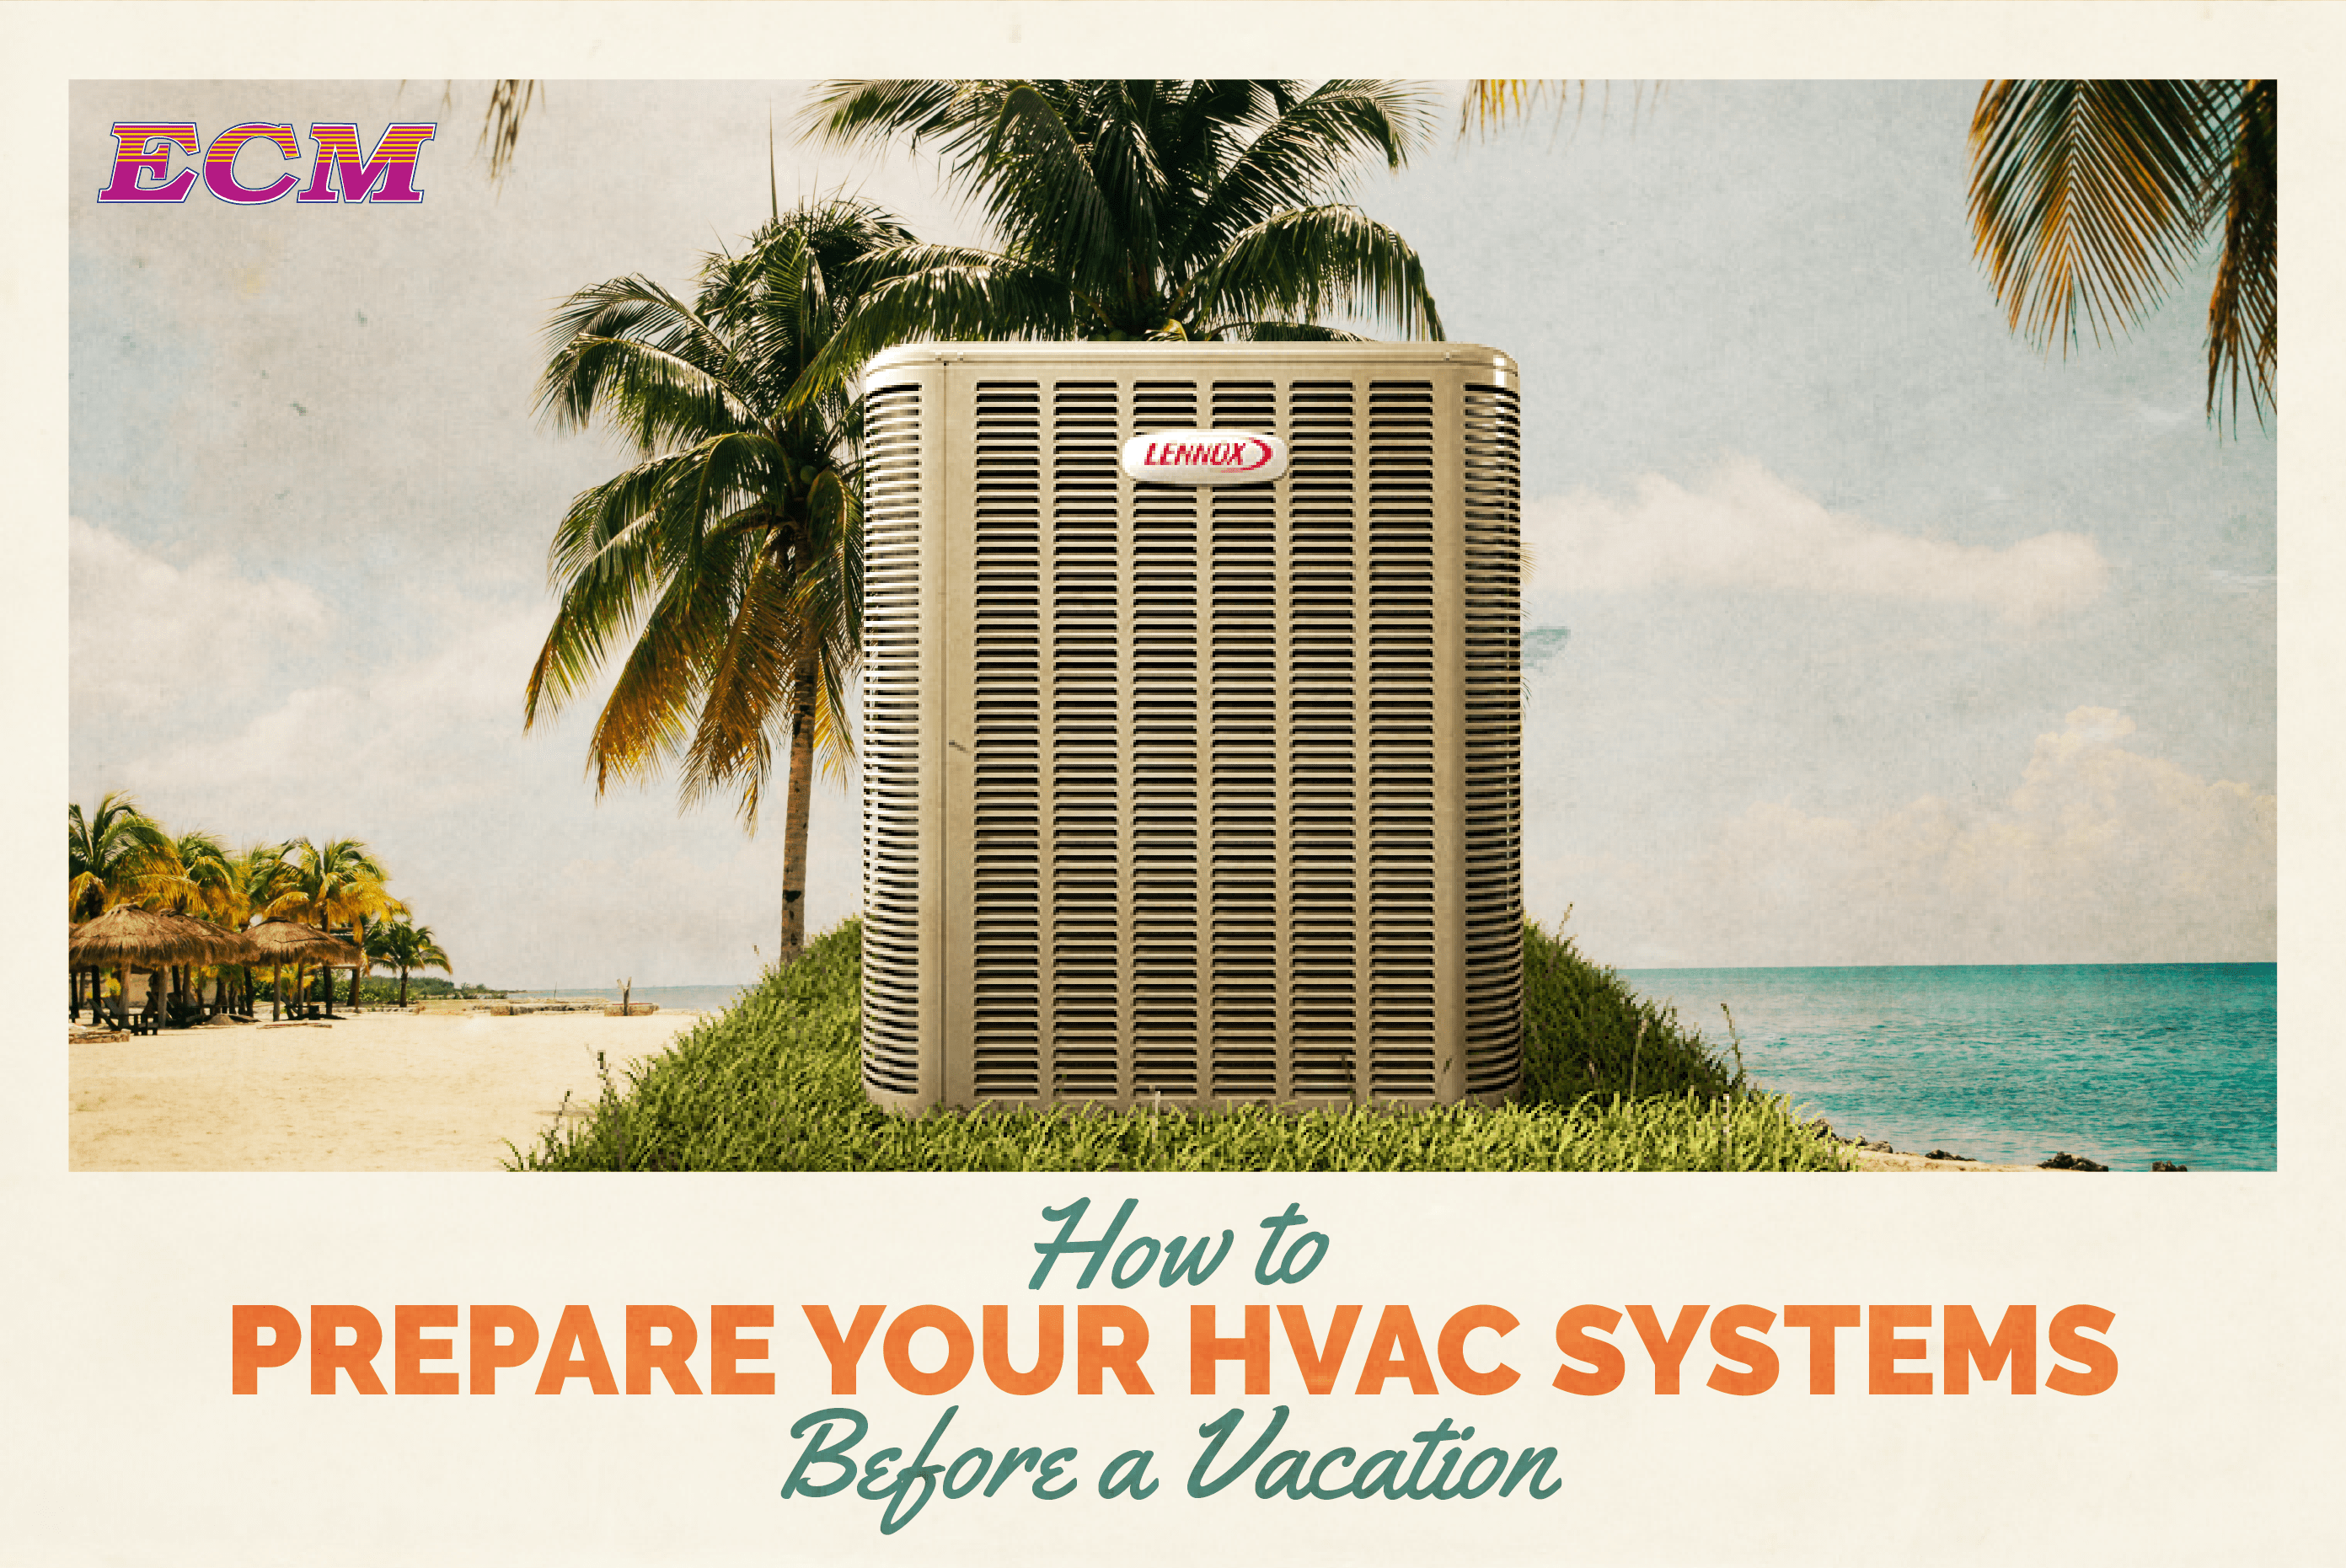 Prepare your HVAC